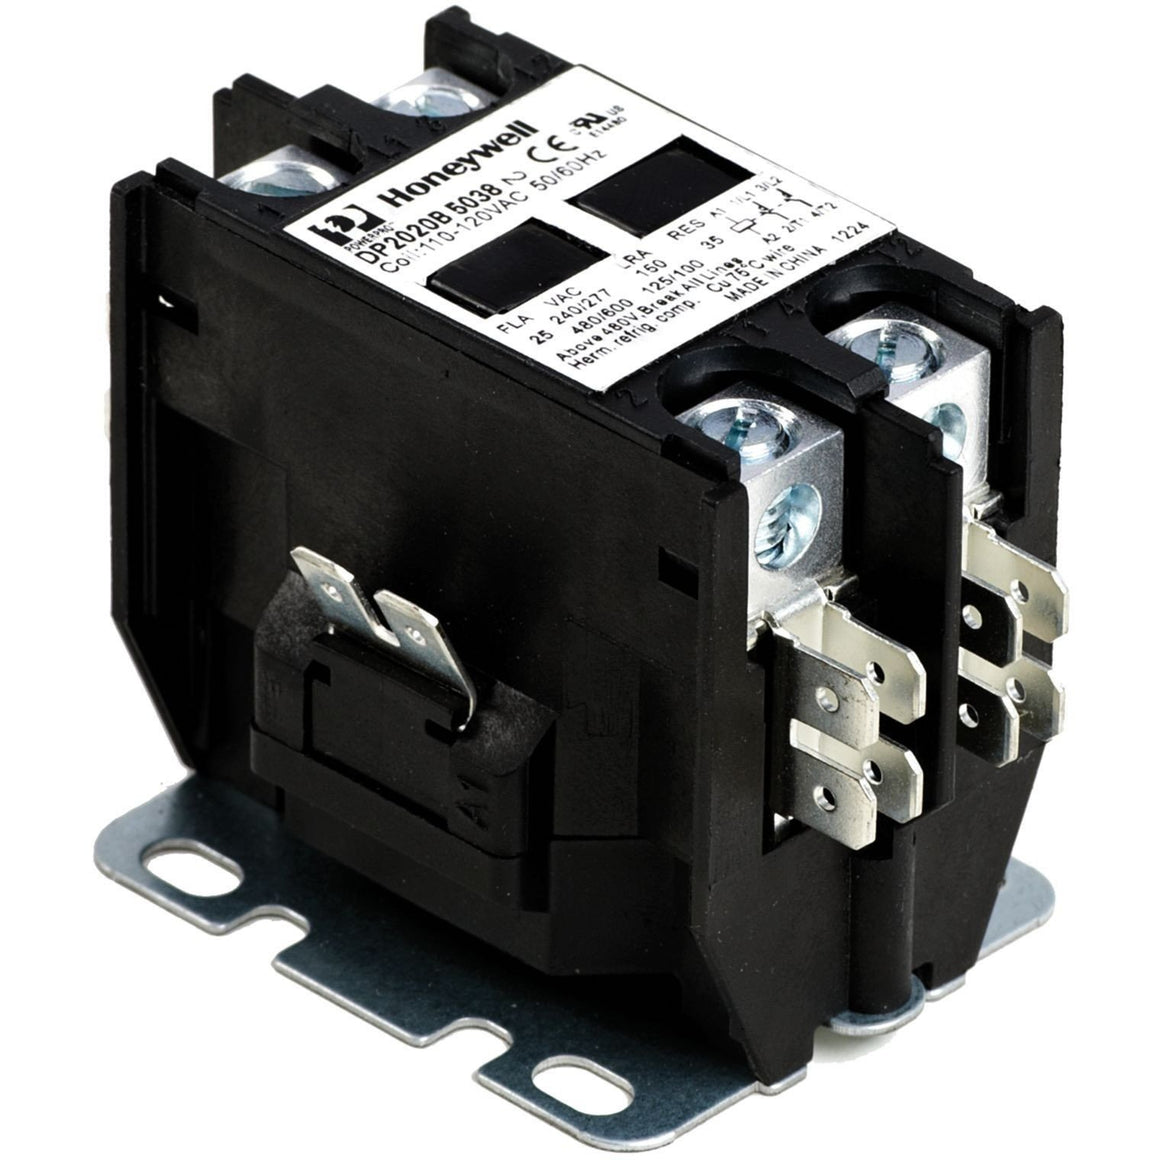 DP1030A5014_580x@2x?v=1504886330 hvac wholesale home improvement products  at webbmarketing.co